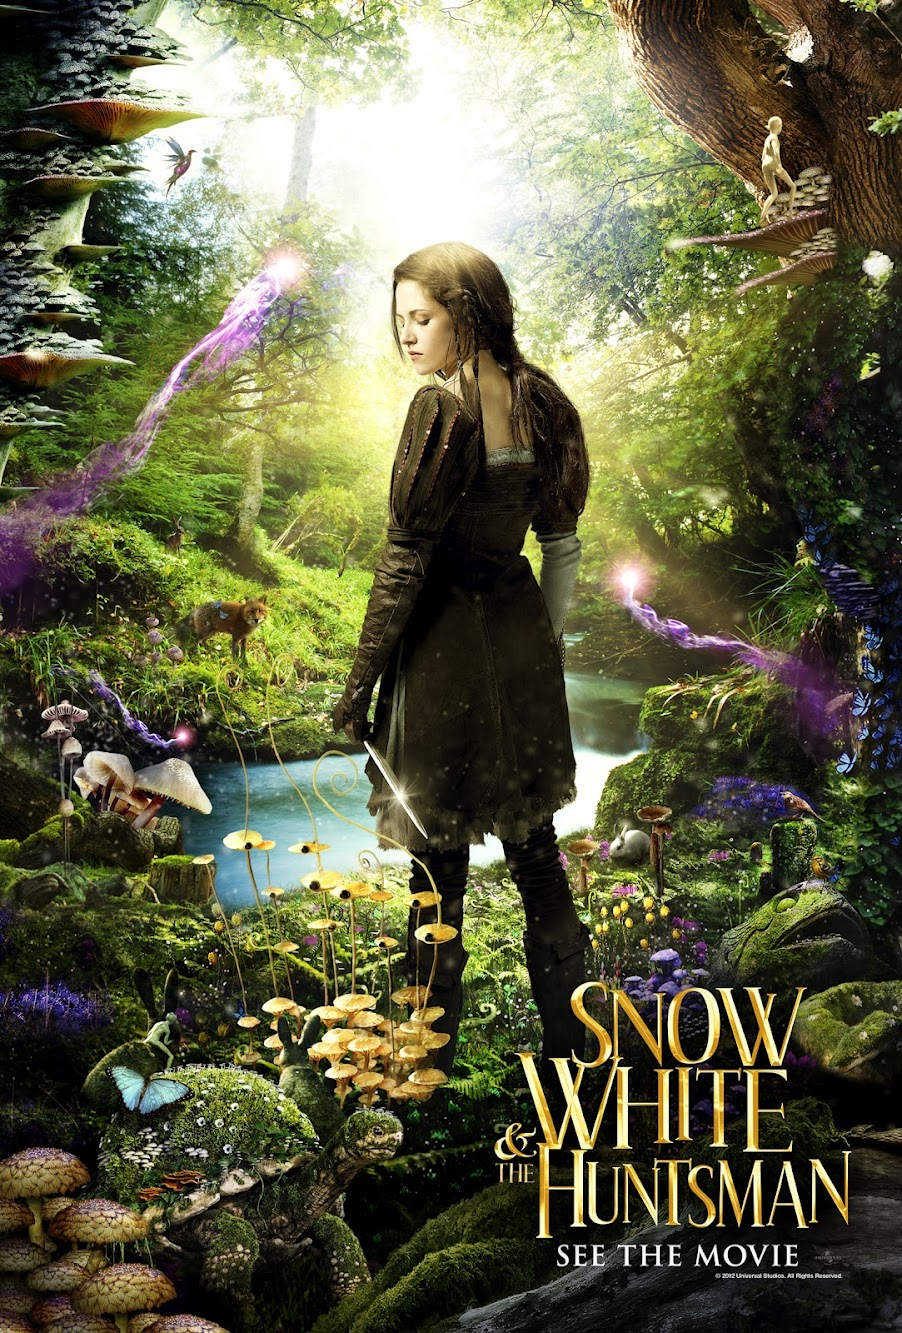 Giveaway: Snow White and the Huntsman Prize Pack!